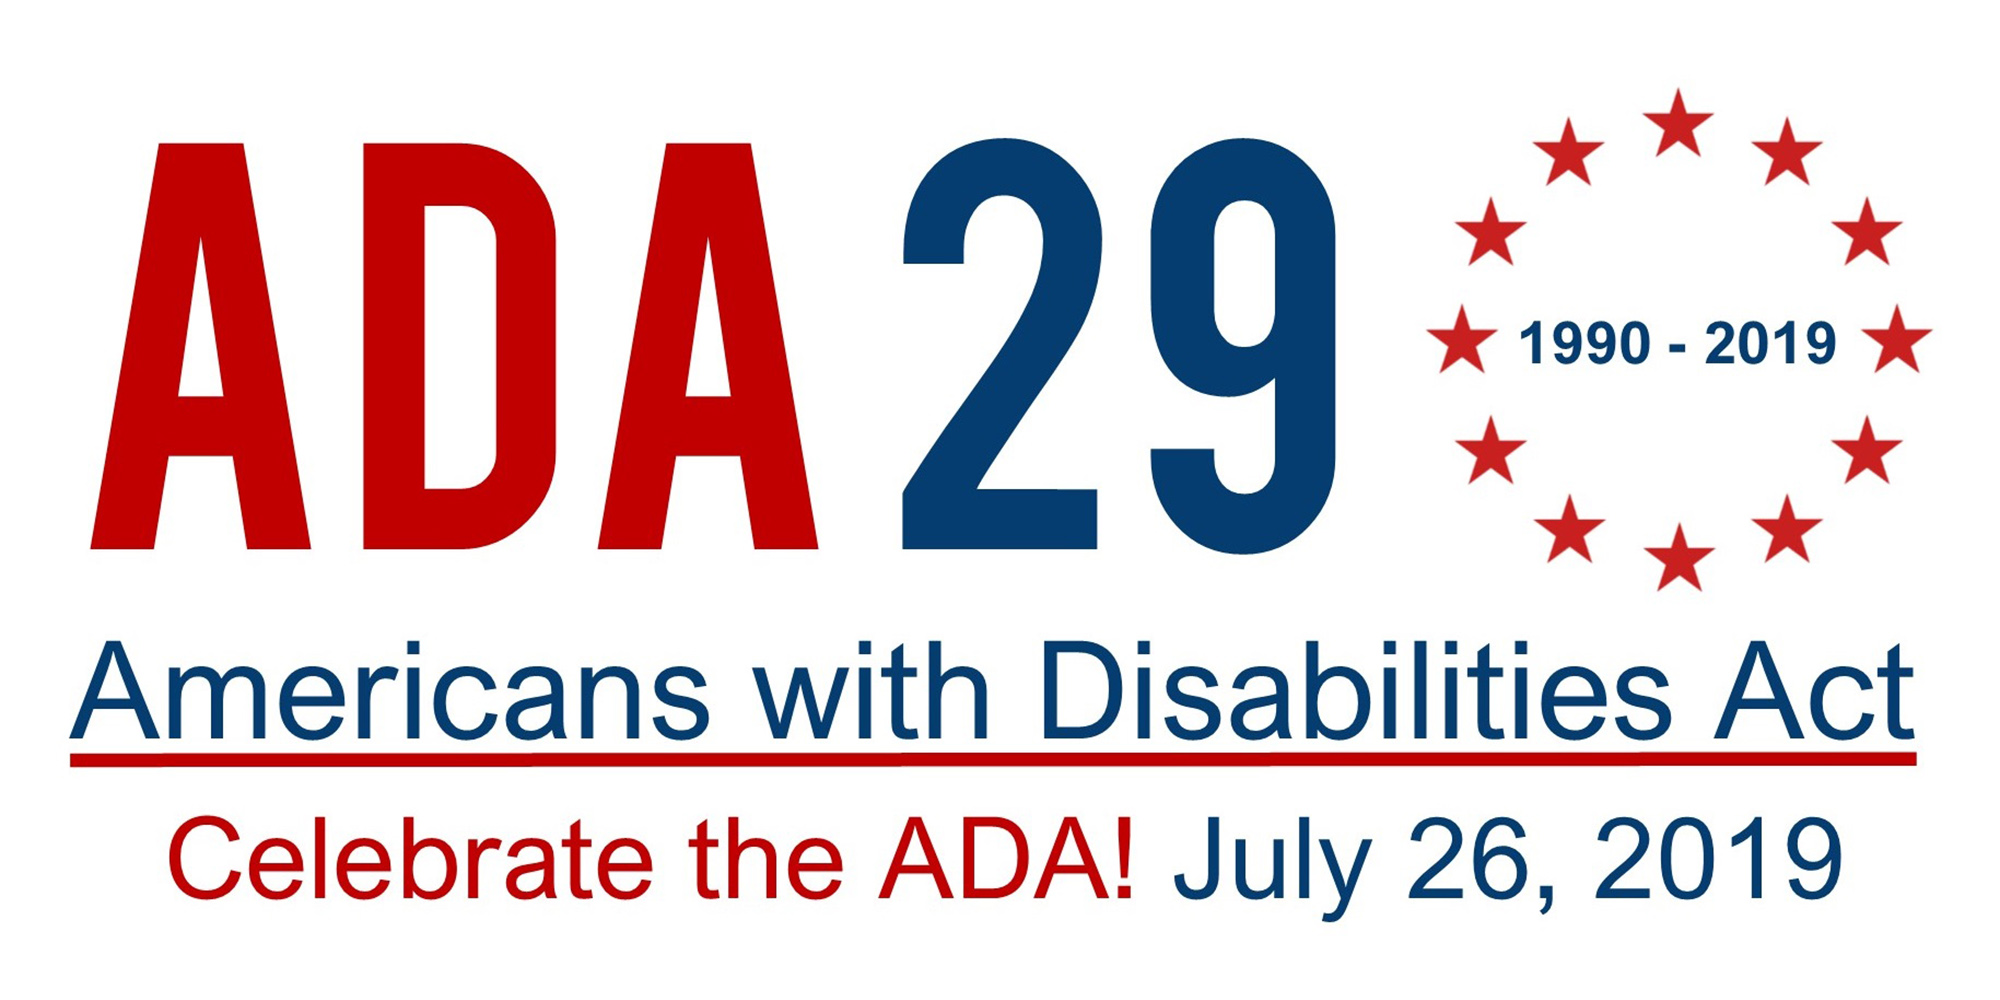 Celebrate the ADA 29 (1990-2019) Americans with Disabilities Act - July 26, 2019